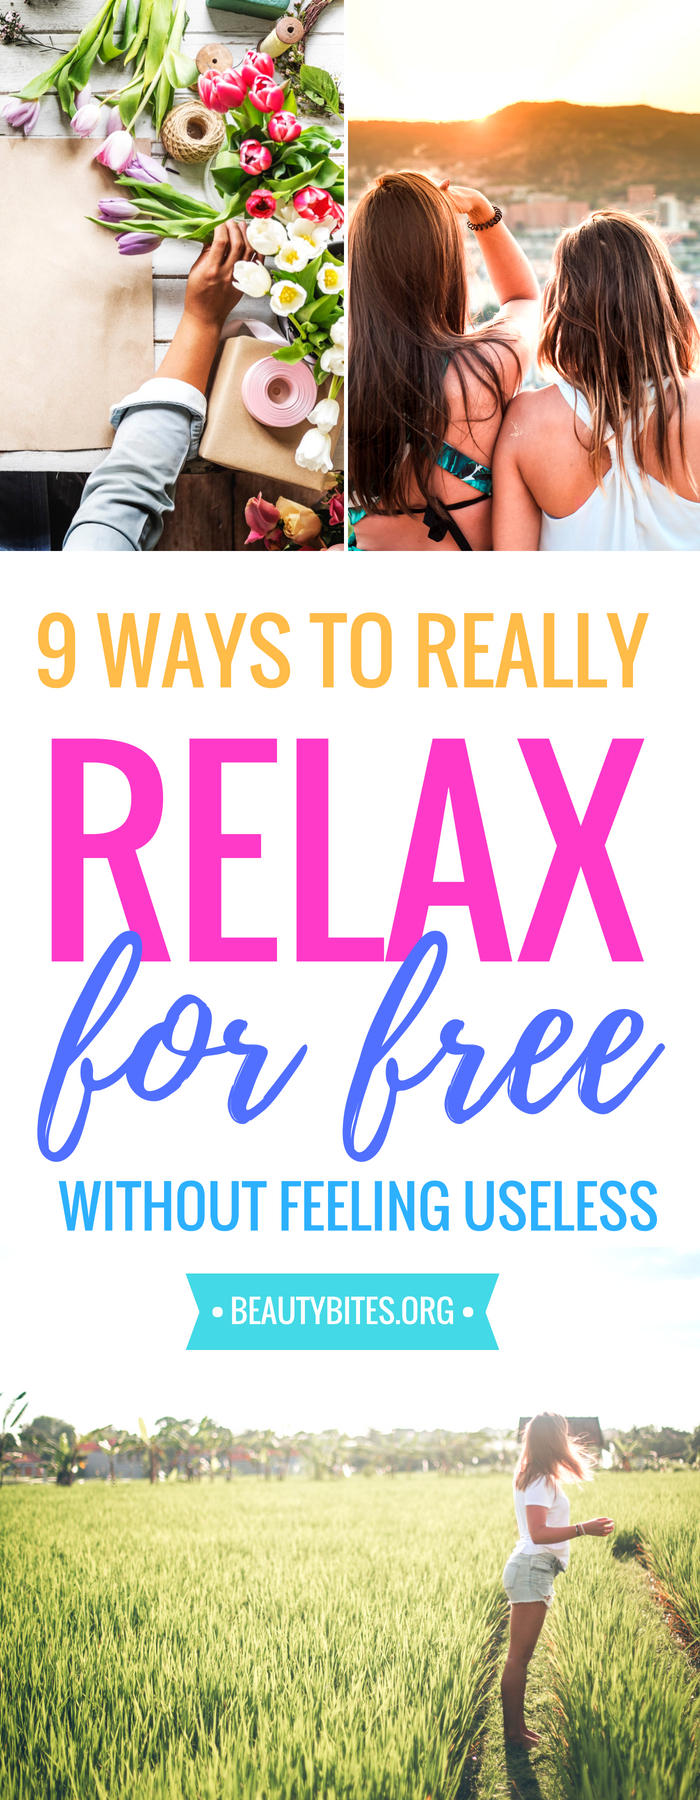 9 ways to actually relax and recharge for free without feeling useless! Forget about spa and massages and try some of these self-care tips if you want to reduce stress naturally! | www.beautybites.org | Healthy habits to make you feel awesome